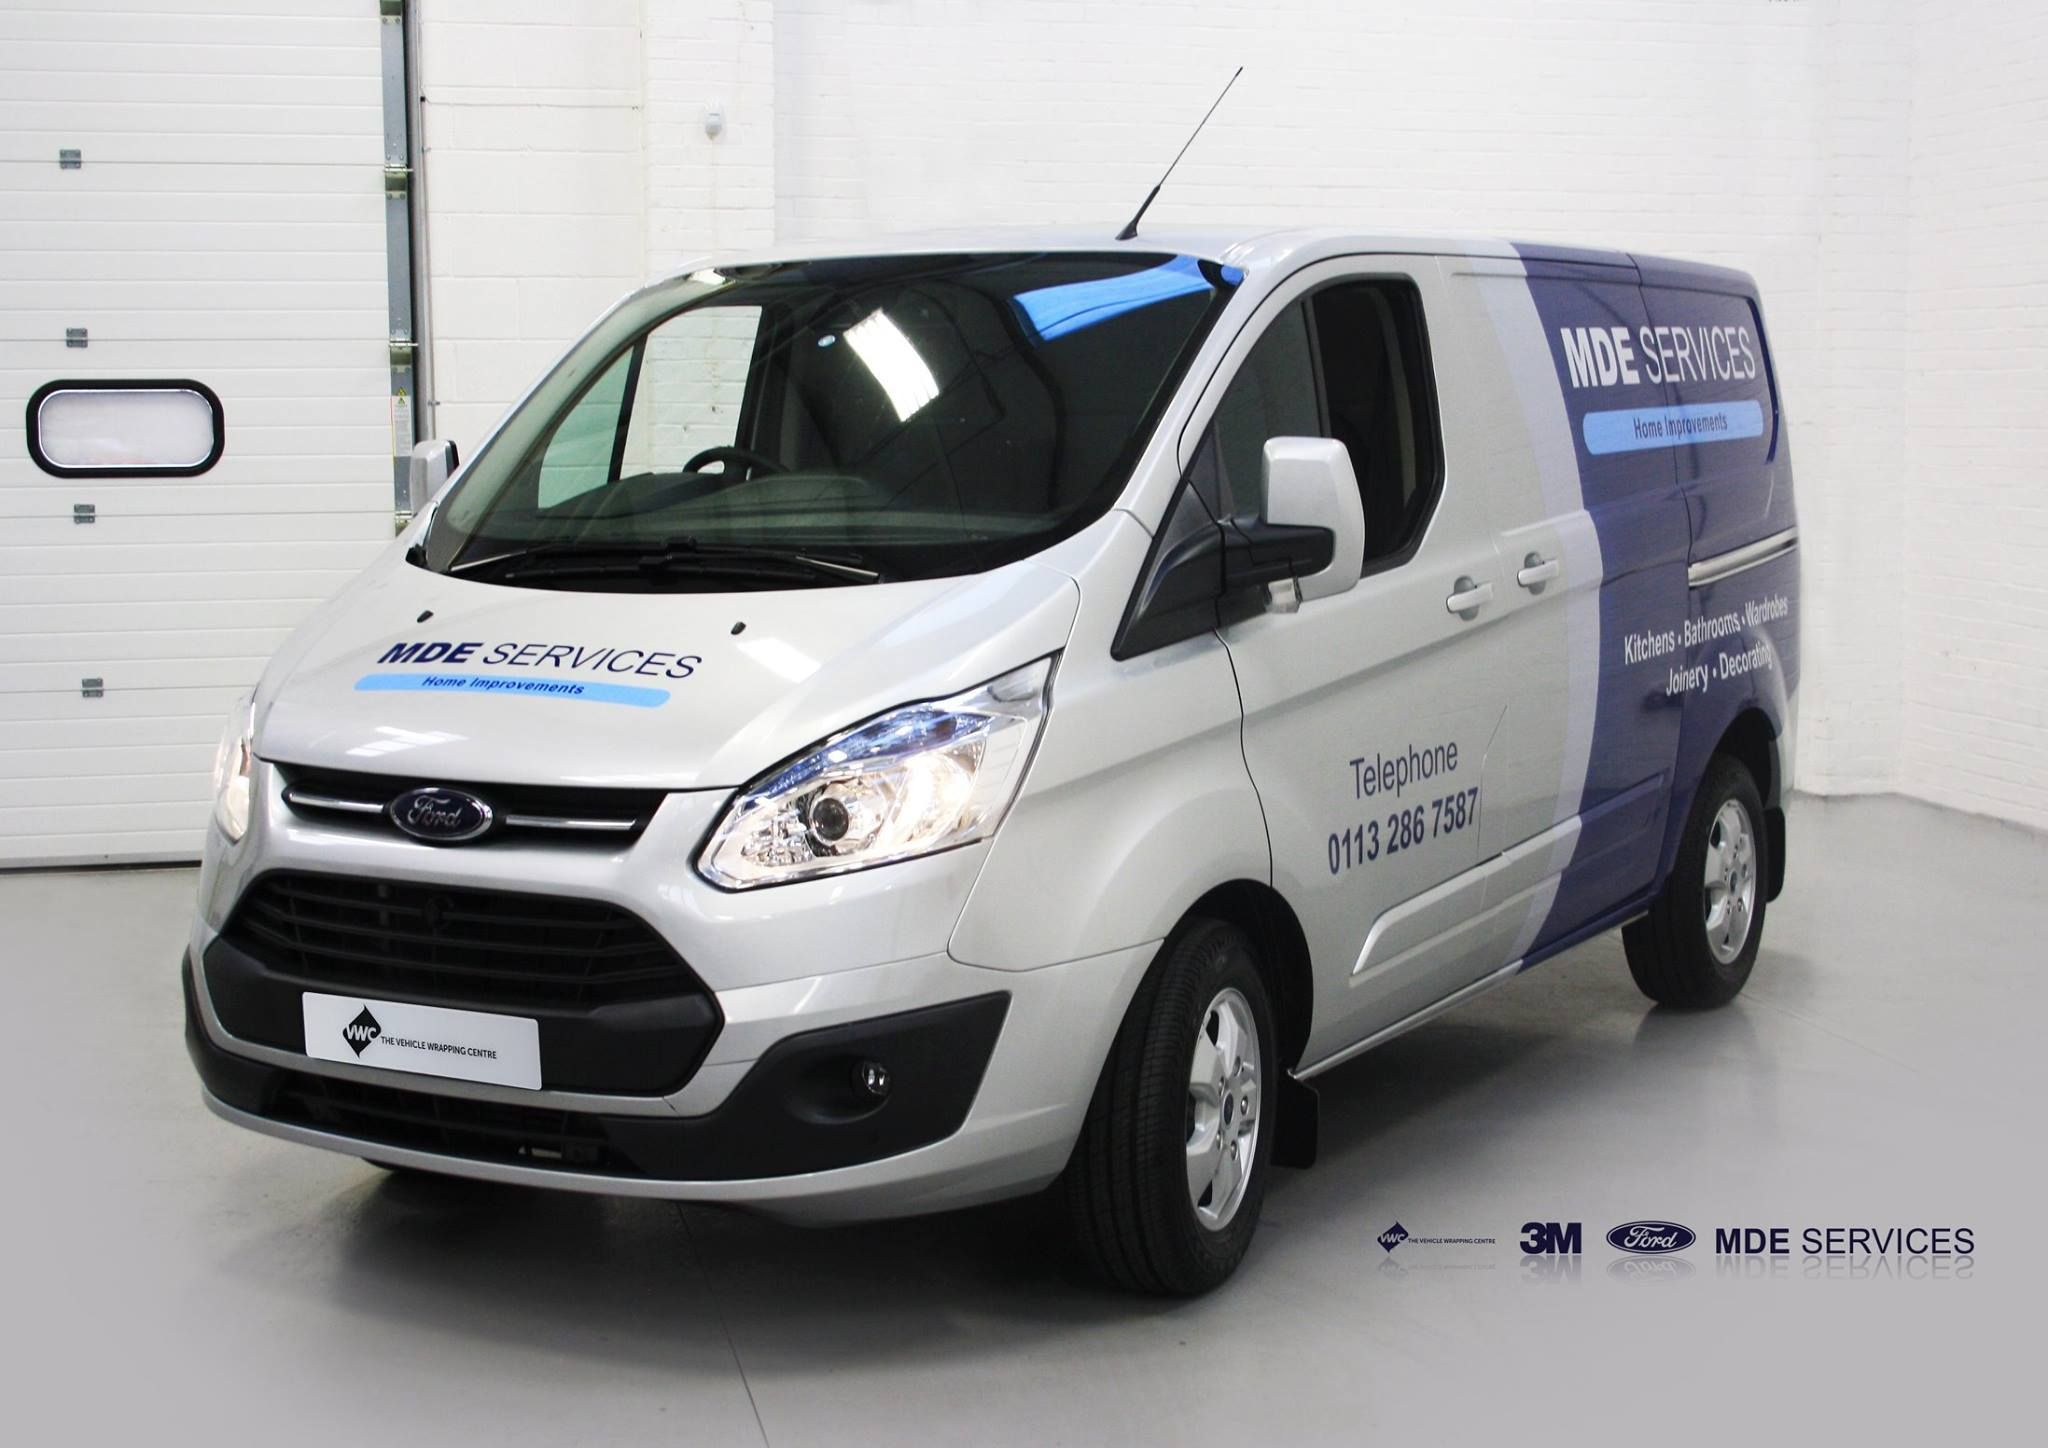 Mde Services Commercial Vehicle Wrap Project Transit Custom